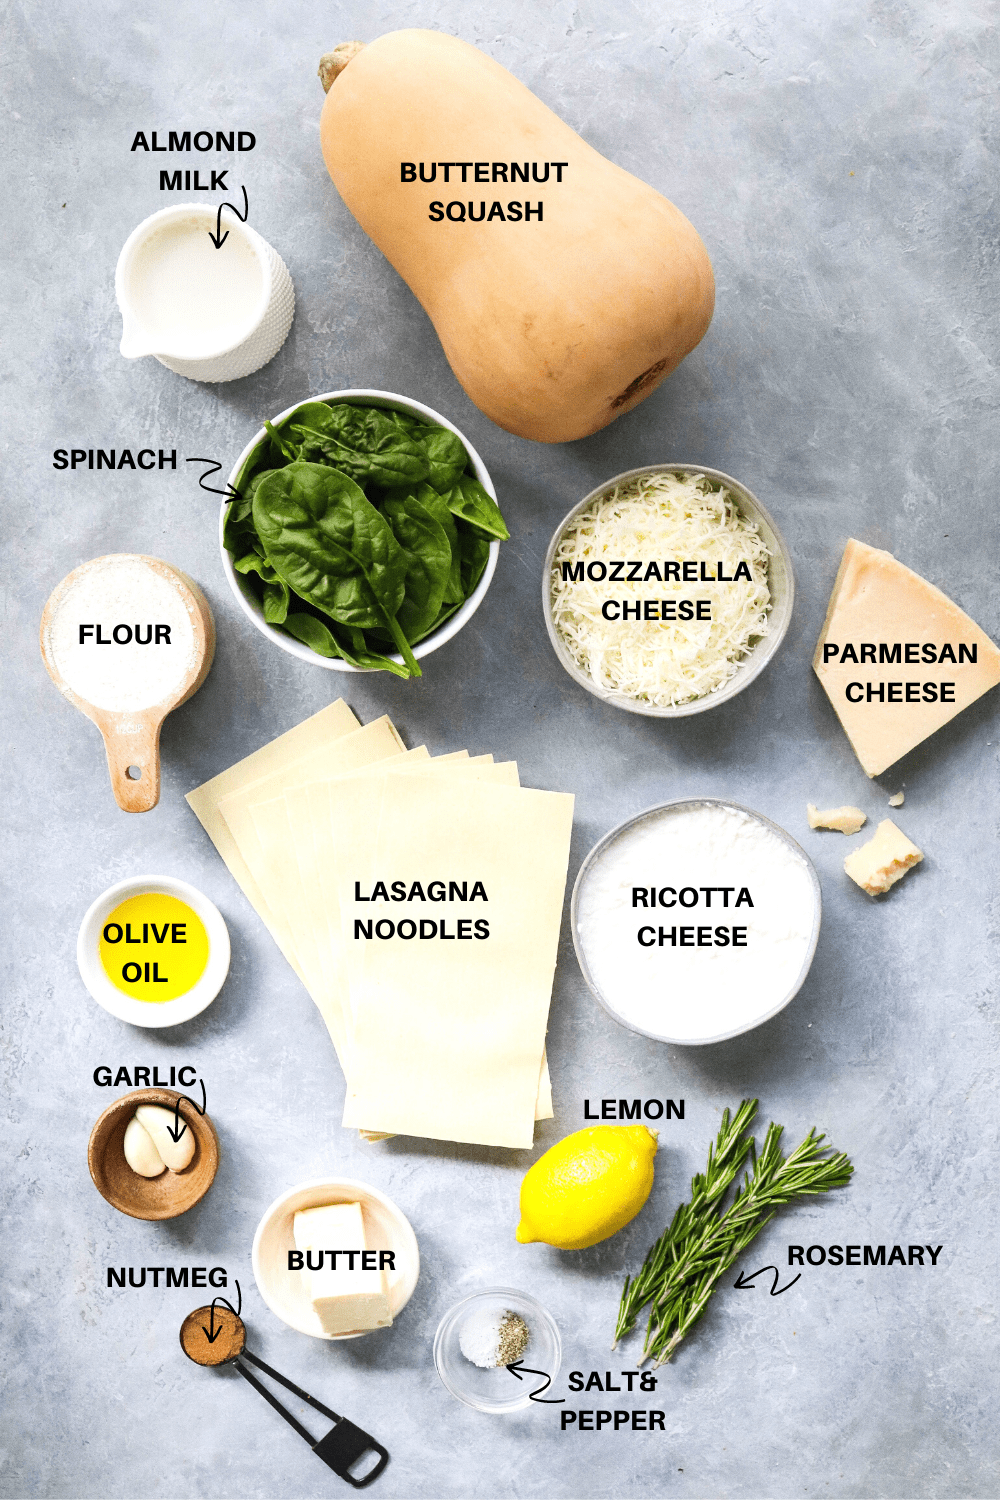 Whole butternut squash, white cup of milk, bowl of spinach, bowl of shredded mozzarella cheese, cup of flour, lasagna noodles, ricotta cheese, lemon and herbs all laid out on a gray surface.